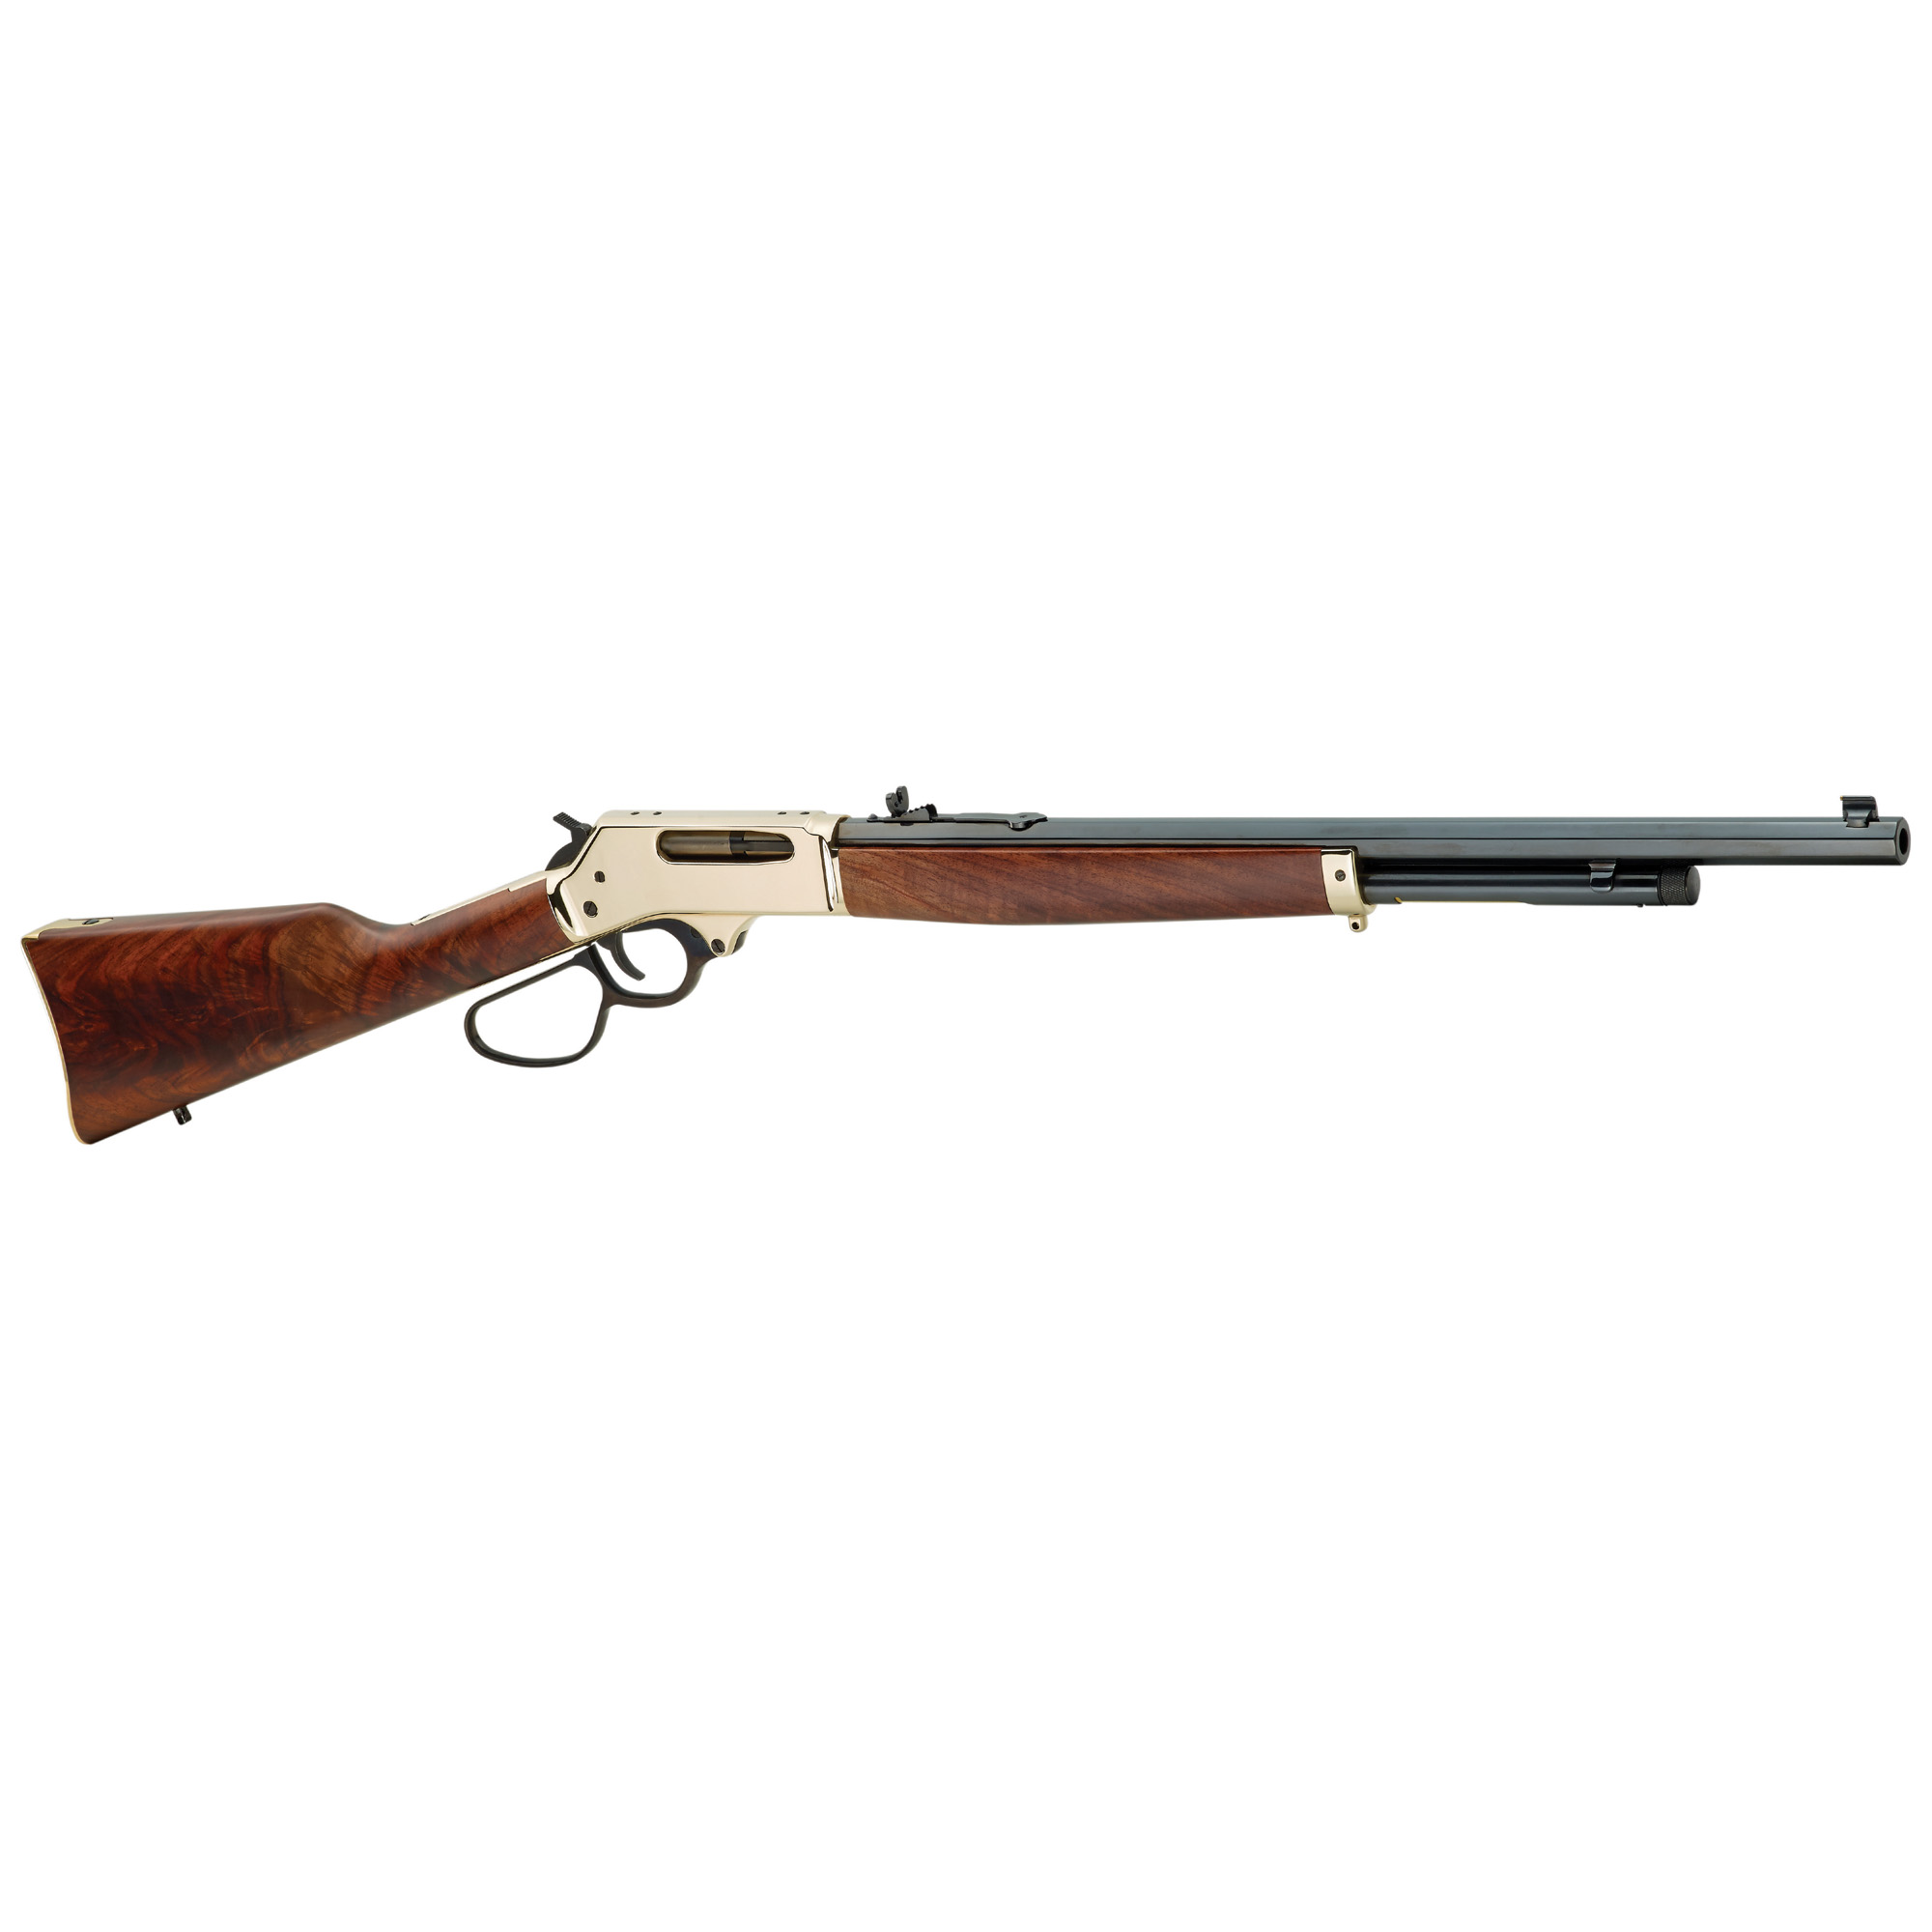 """If you need a handy yet powerful lever gun capable of fast repeat shots in the bear country of Alaska"""" or just a short"""" light rifle for deer hunting in the mountains of Pennsylvania"""" Henry Rifles will provide the accuracy and reliability you can count on."""